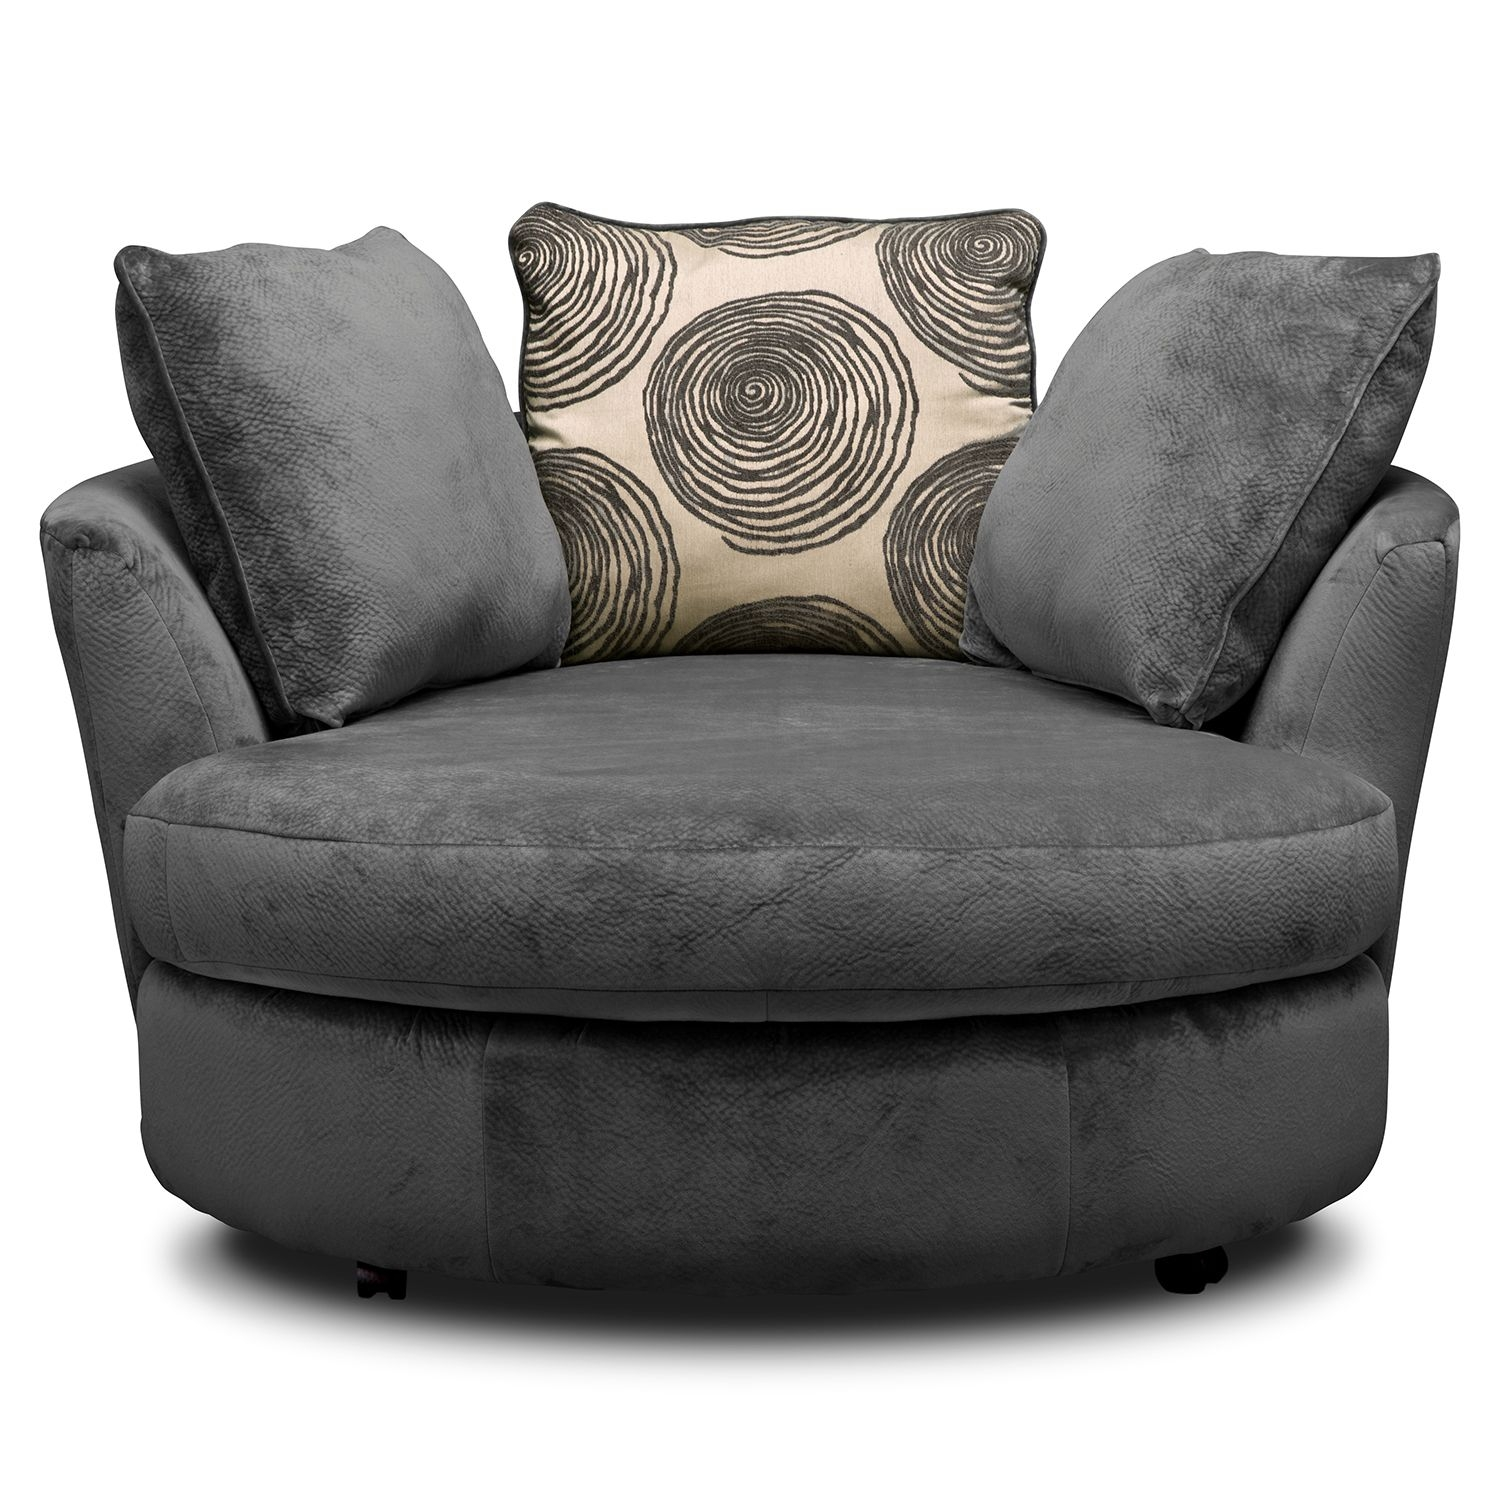 Sofas Center Round Sofa Chair For Saleshley Furniture Big Large Pertaining To Large Sofa Chairs (Image 12 of 15)